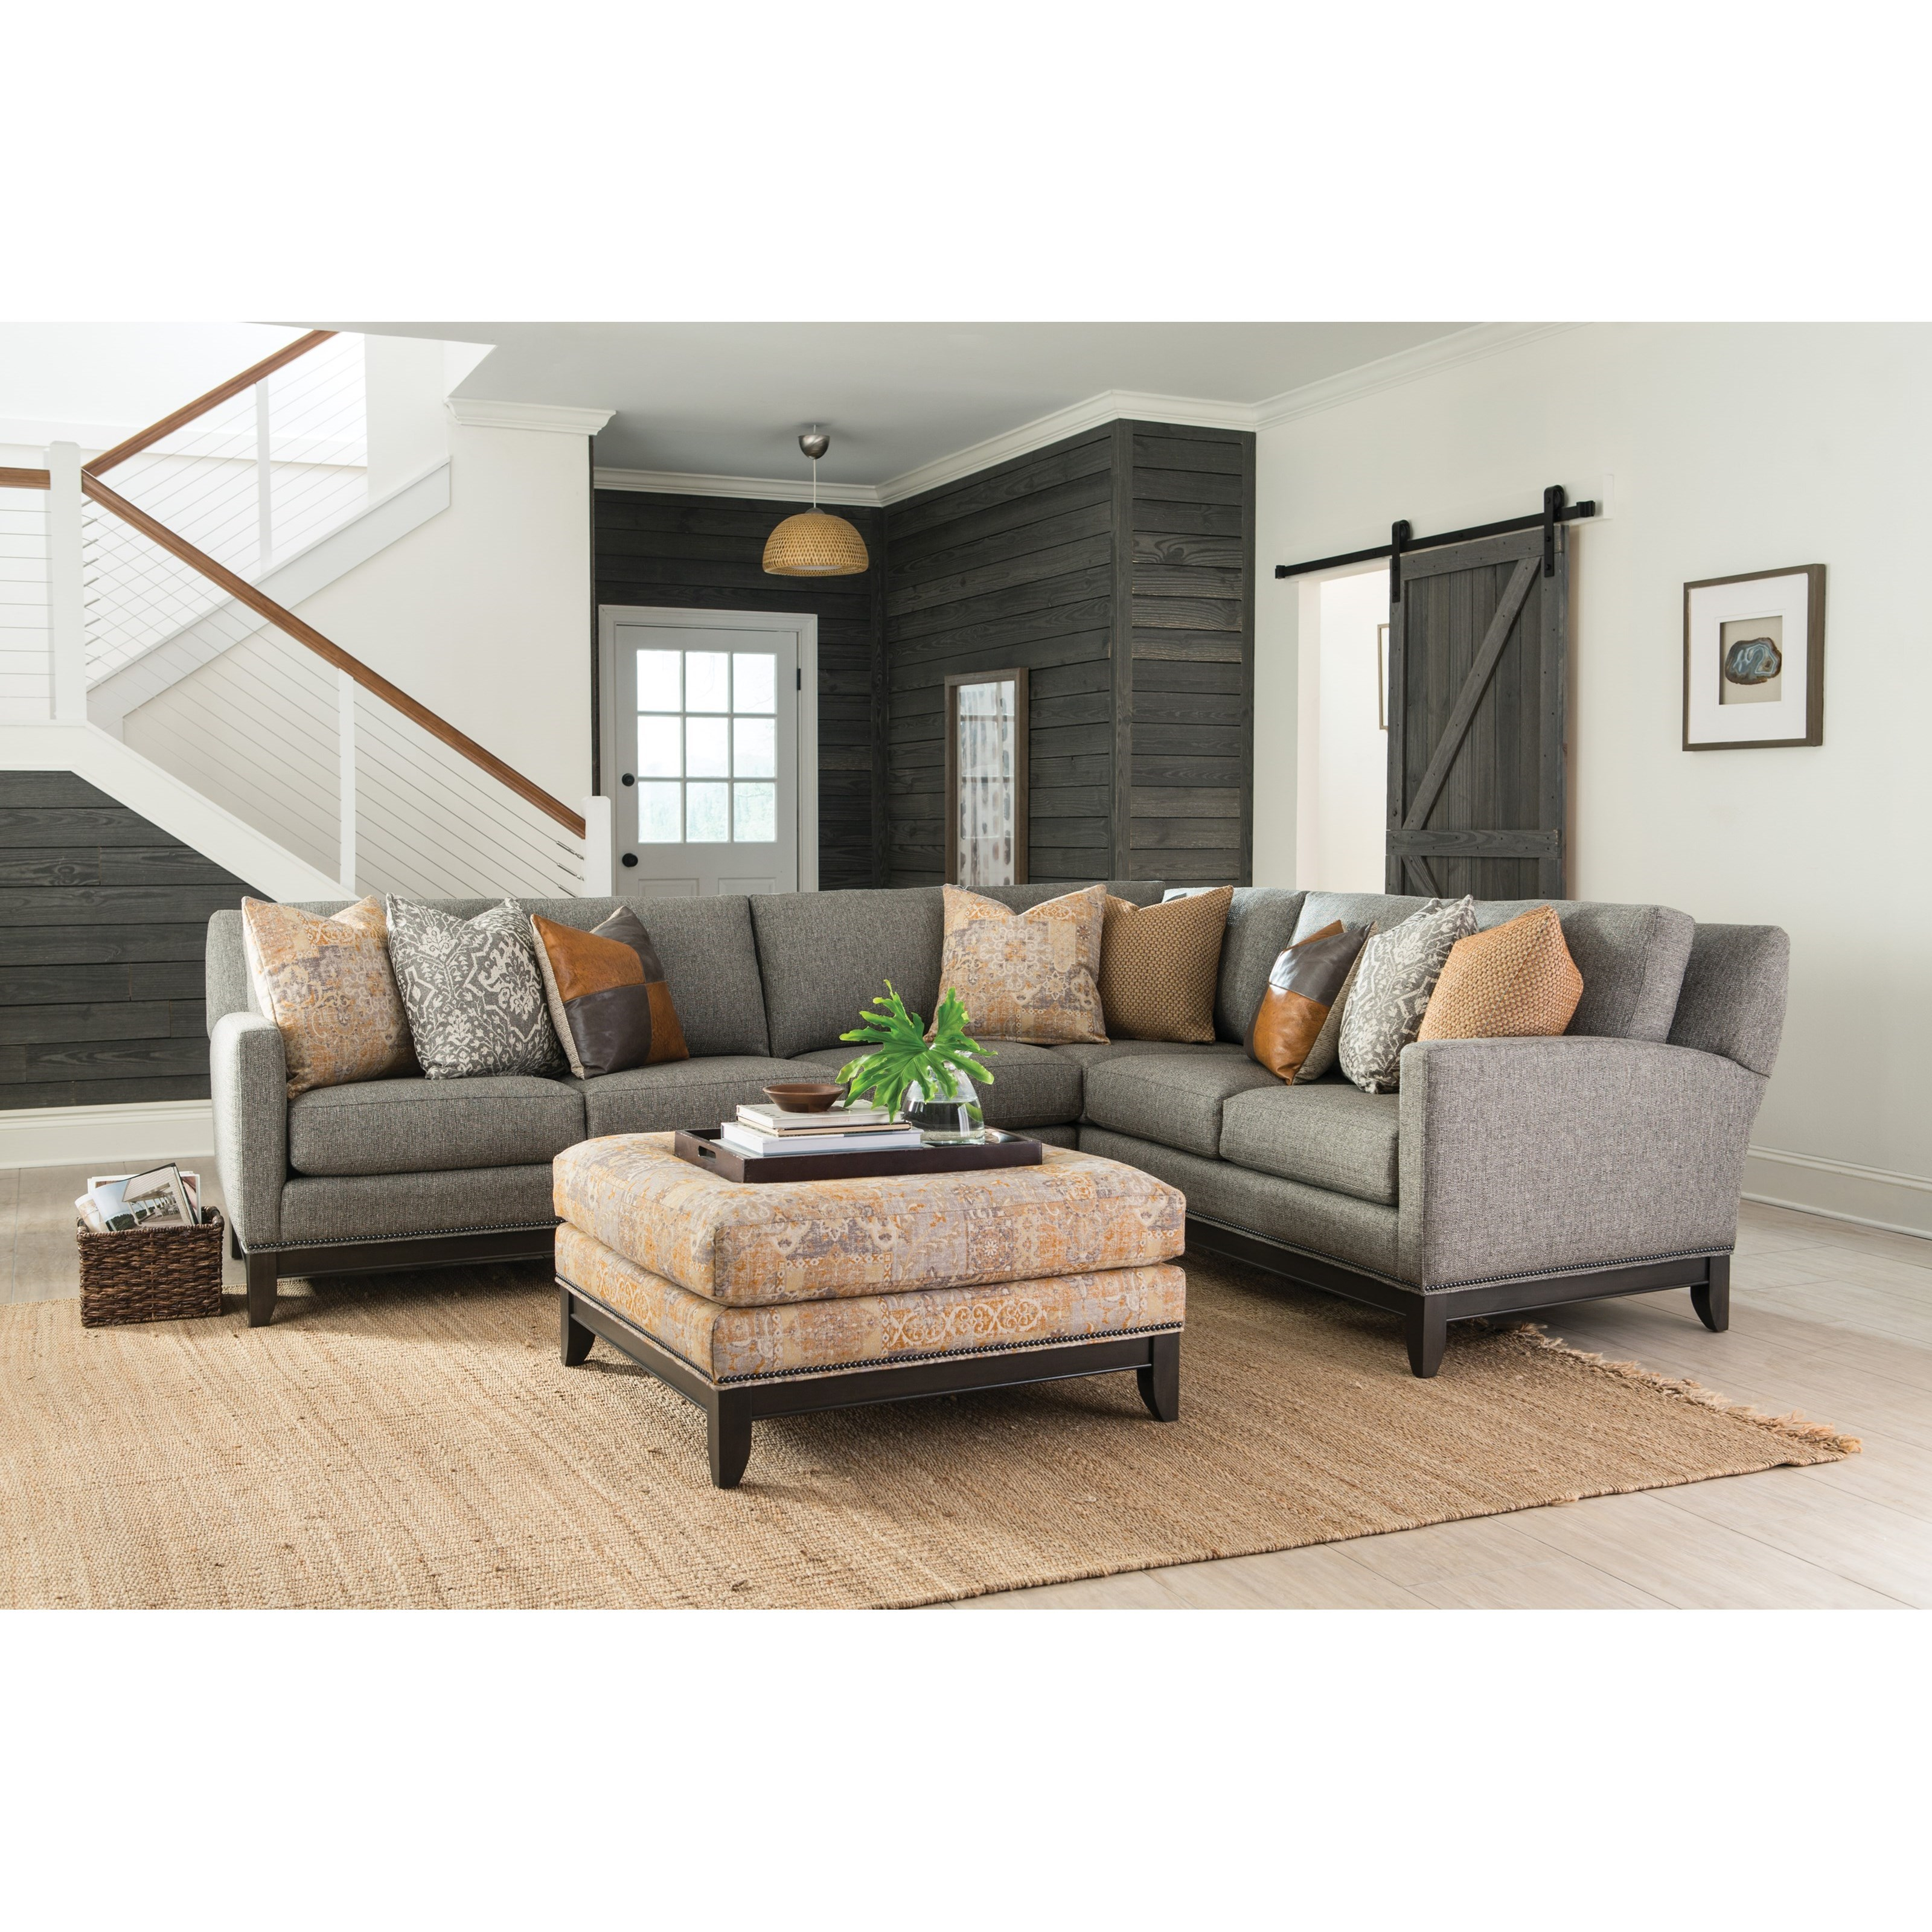 238 Sectional Sofa by Smith Brothers at Rooms for Less